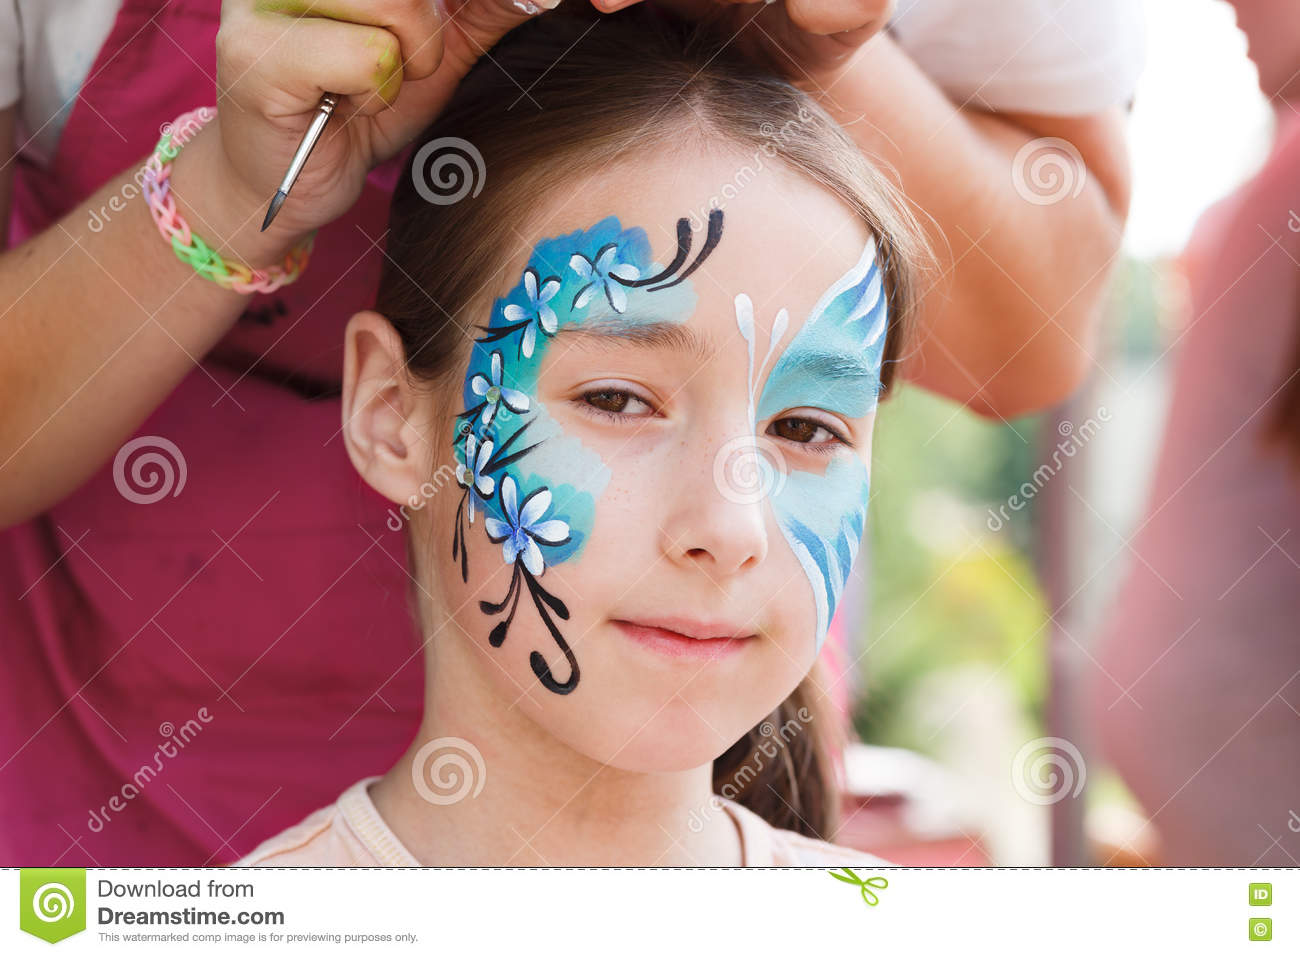 Female child face painting, making butterfly process